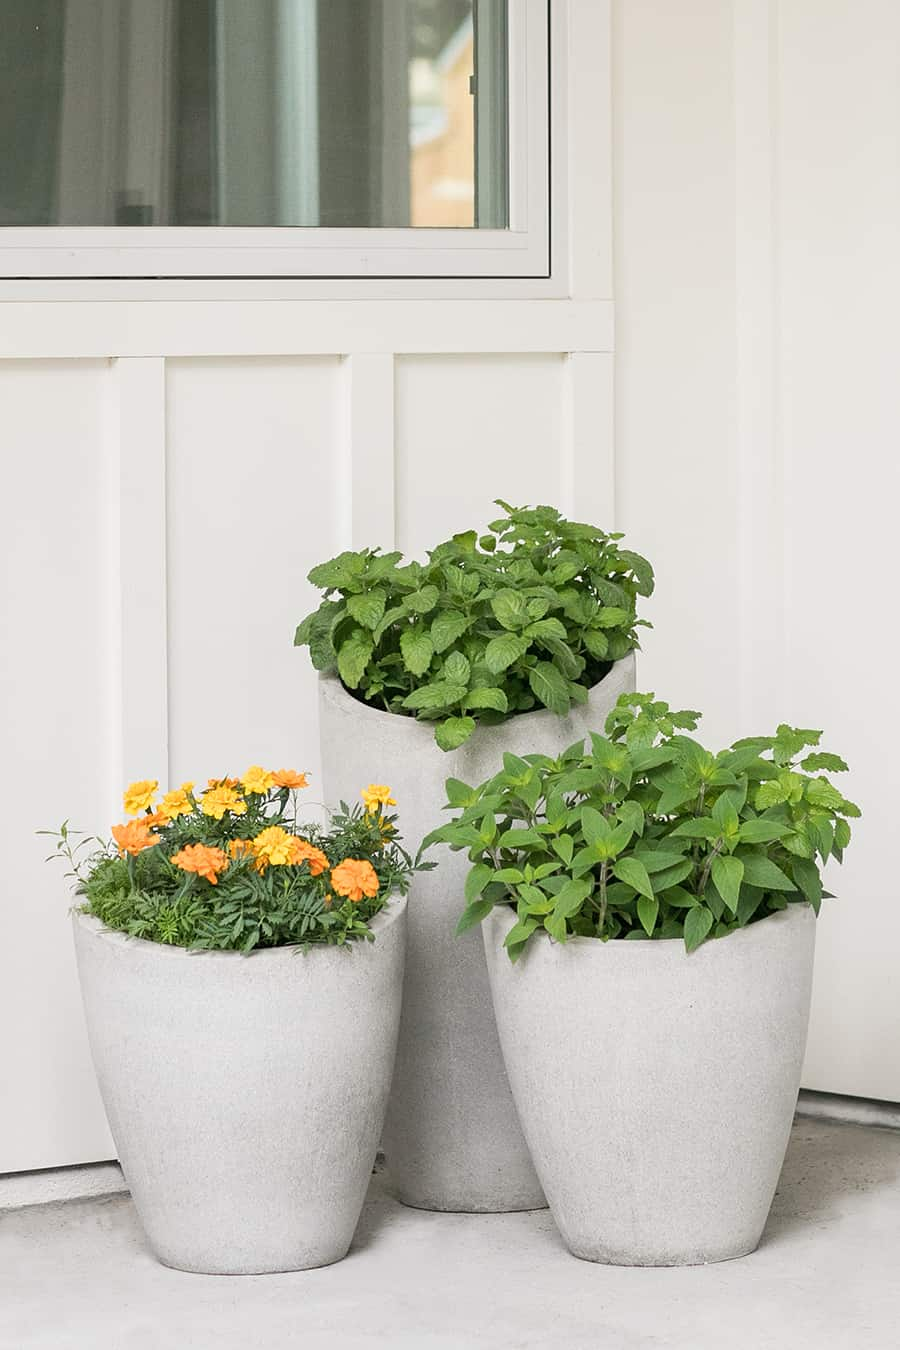 Three concrete pots potted with herbs and flowers.